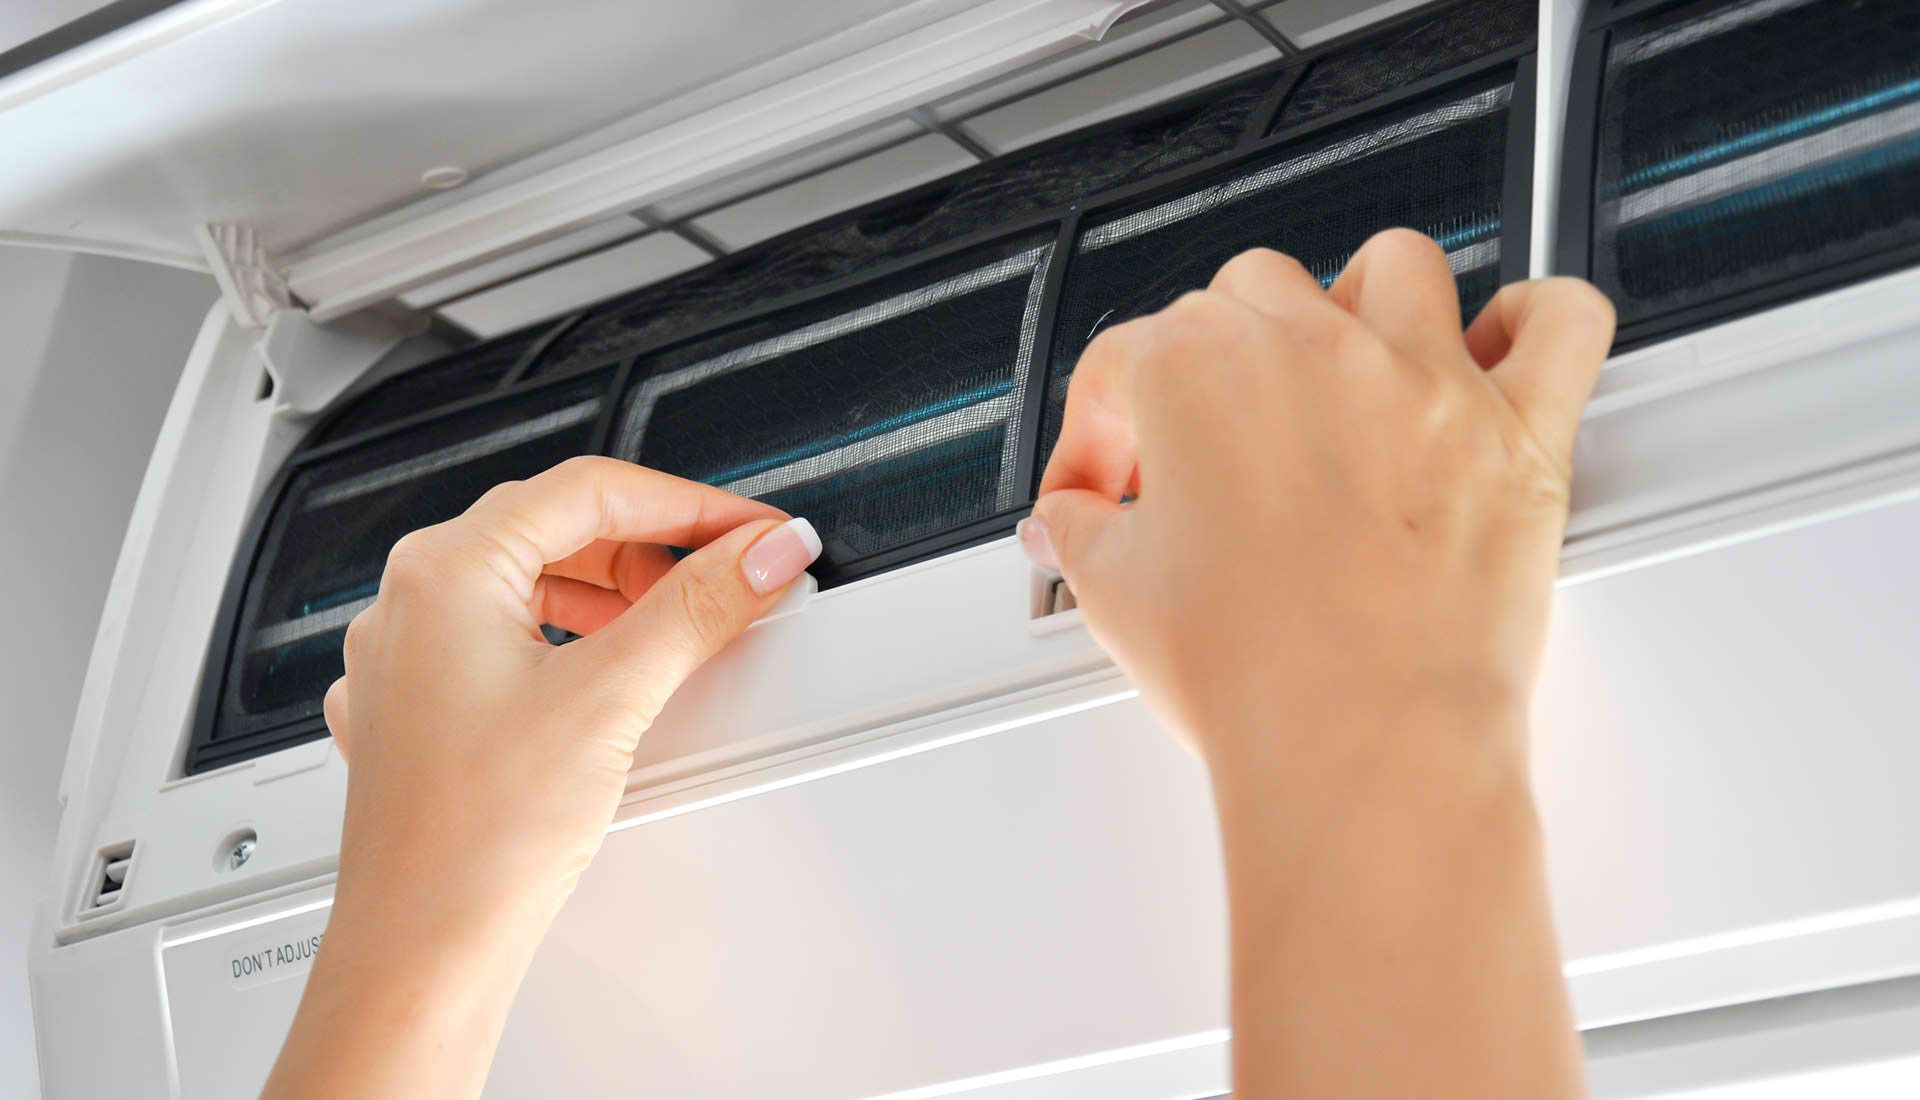 Air conditioning cleaning is not the same as air